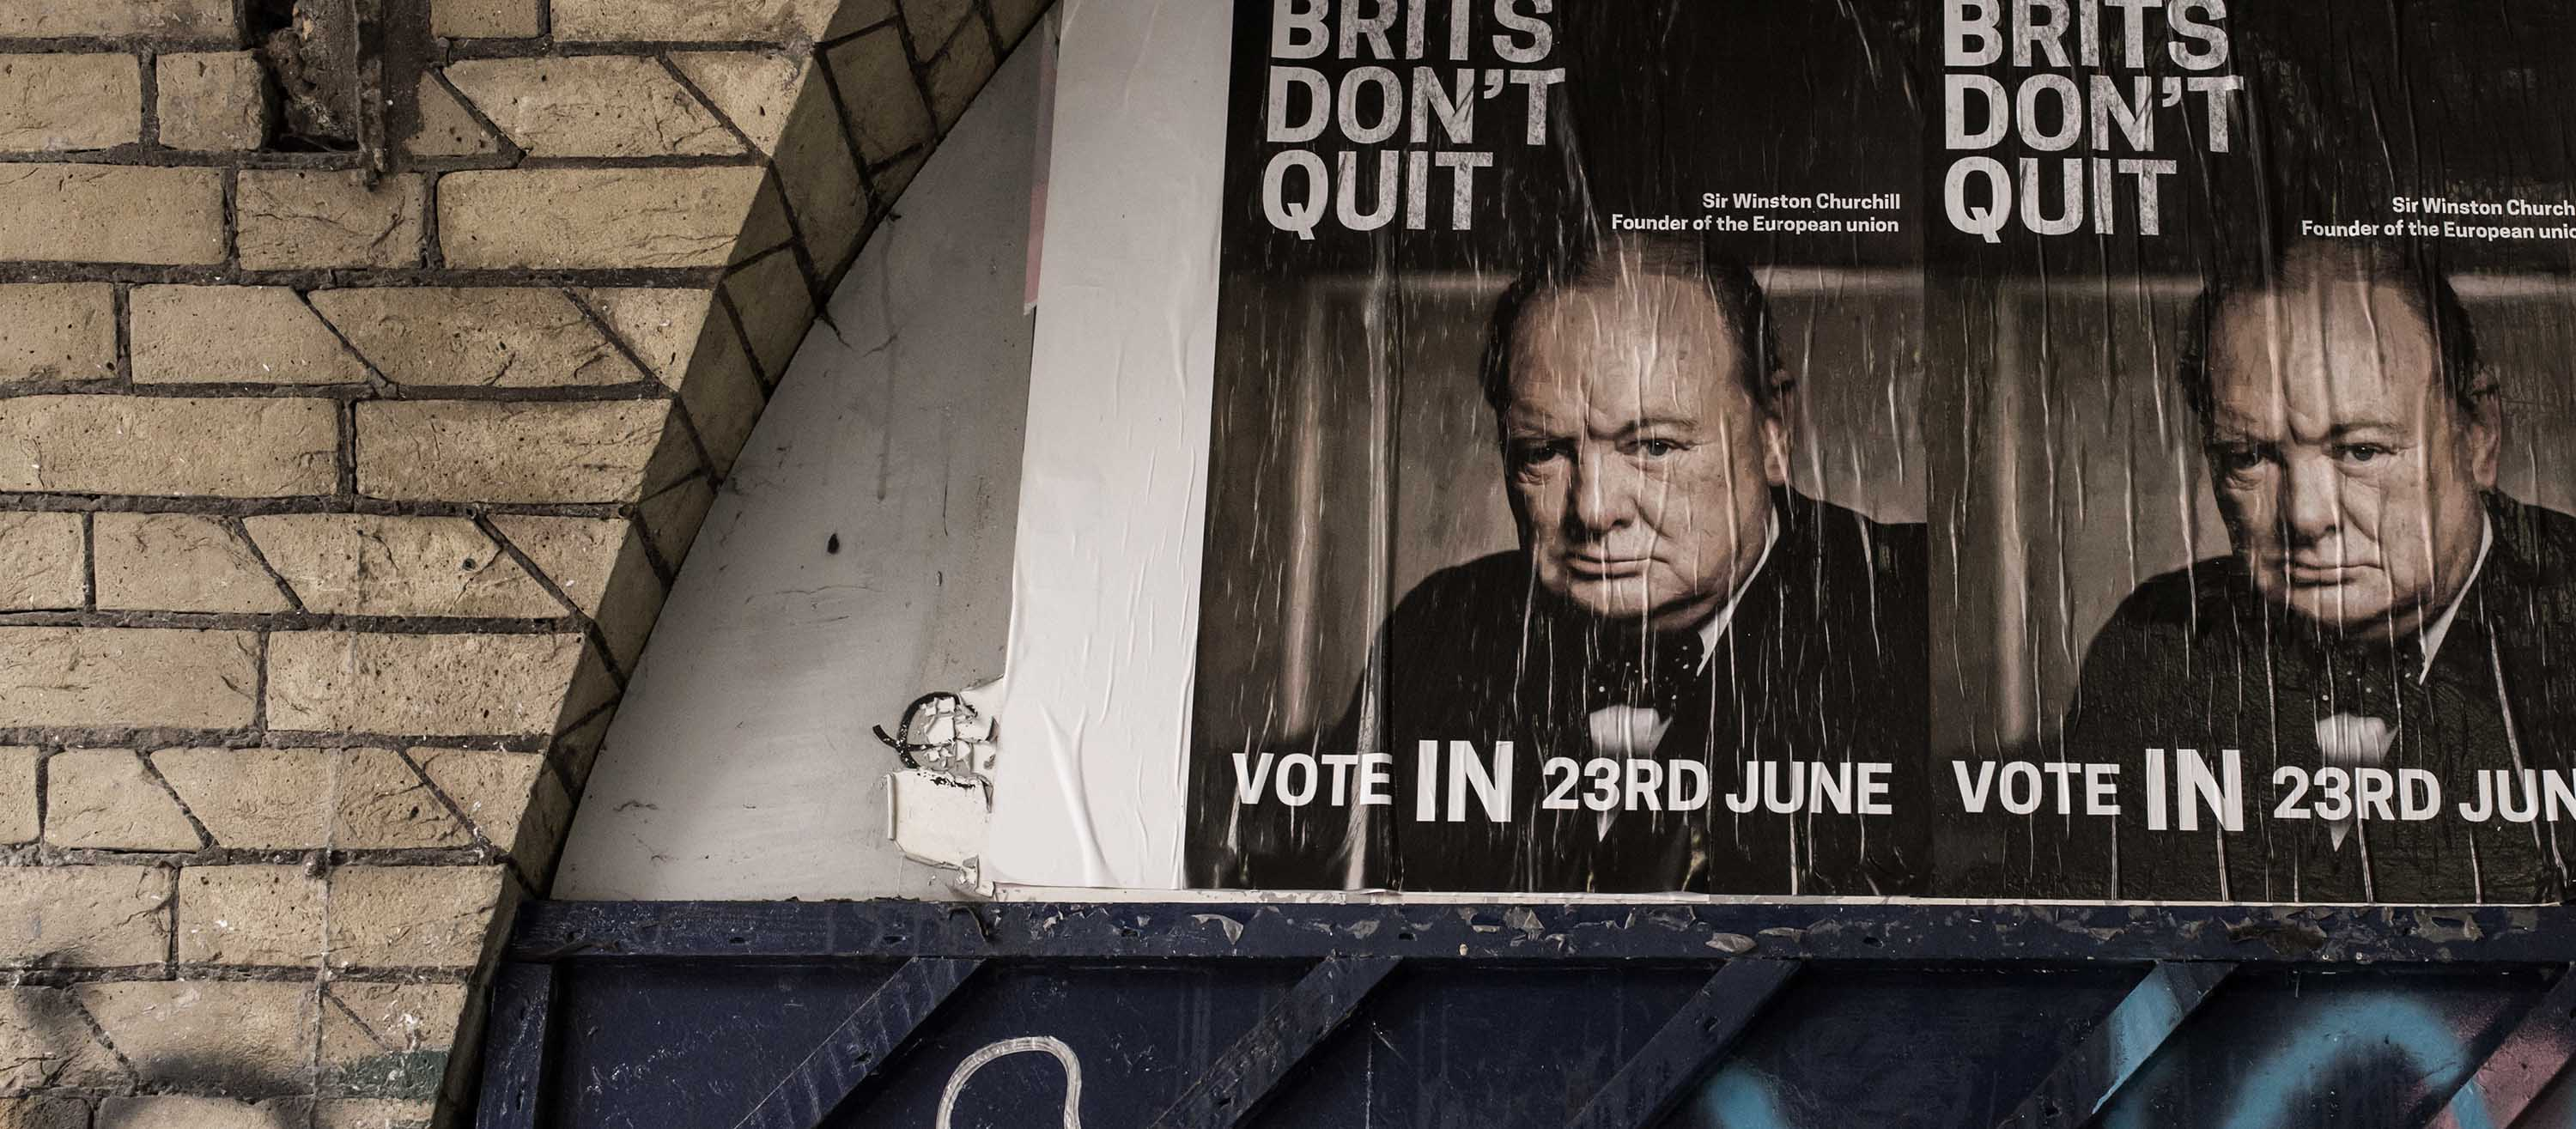 "London, United Kingdom - June 20, 2016: Posters in favor of a vote to remain in the European Union with Winston Churchill's face and the words ""Brits don't Quit"". The referendum on the 23rd June 2016 will decide whether the UK should remain a member of the EU."